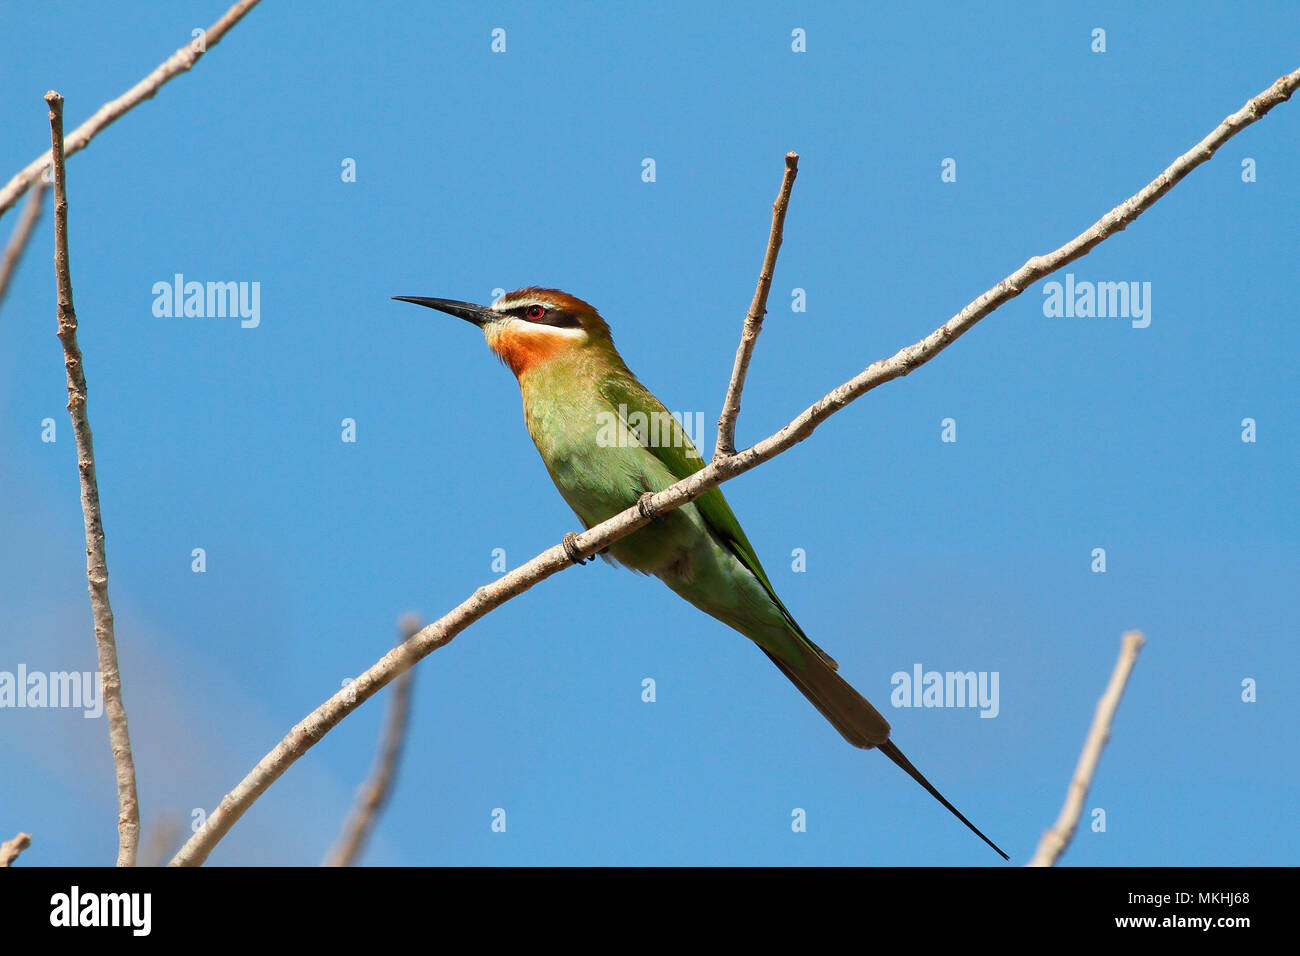 Madagascar Bee-eater (Merops superciliosus) adult perched on a background of blue sky, Madagascar - Stock Image